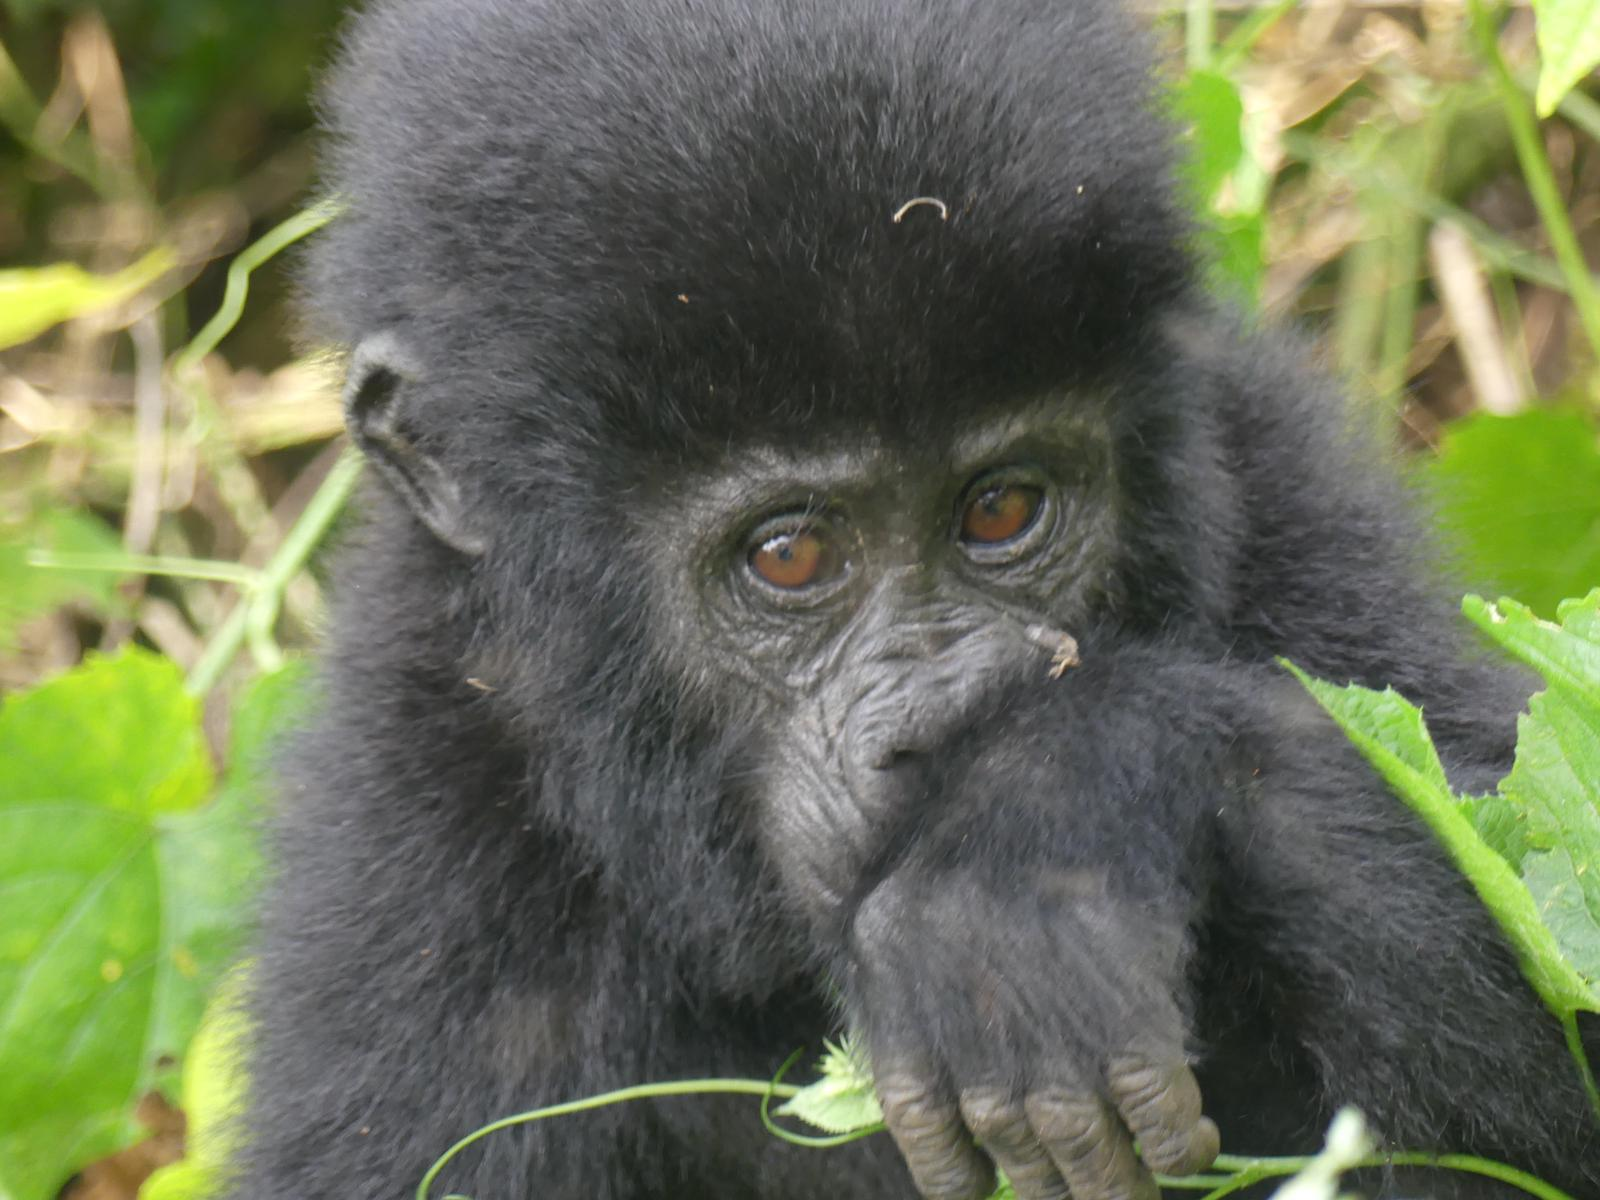 How much does it cost to see the gorillas in Rwanda?